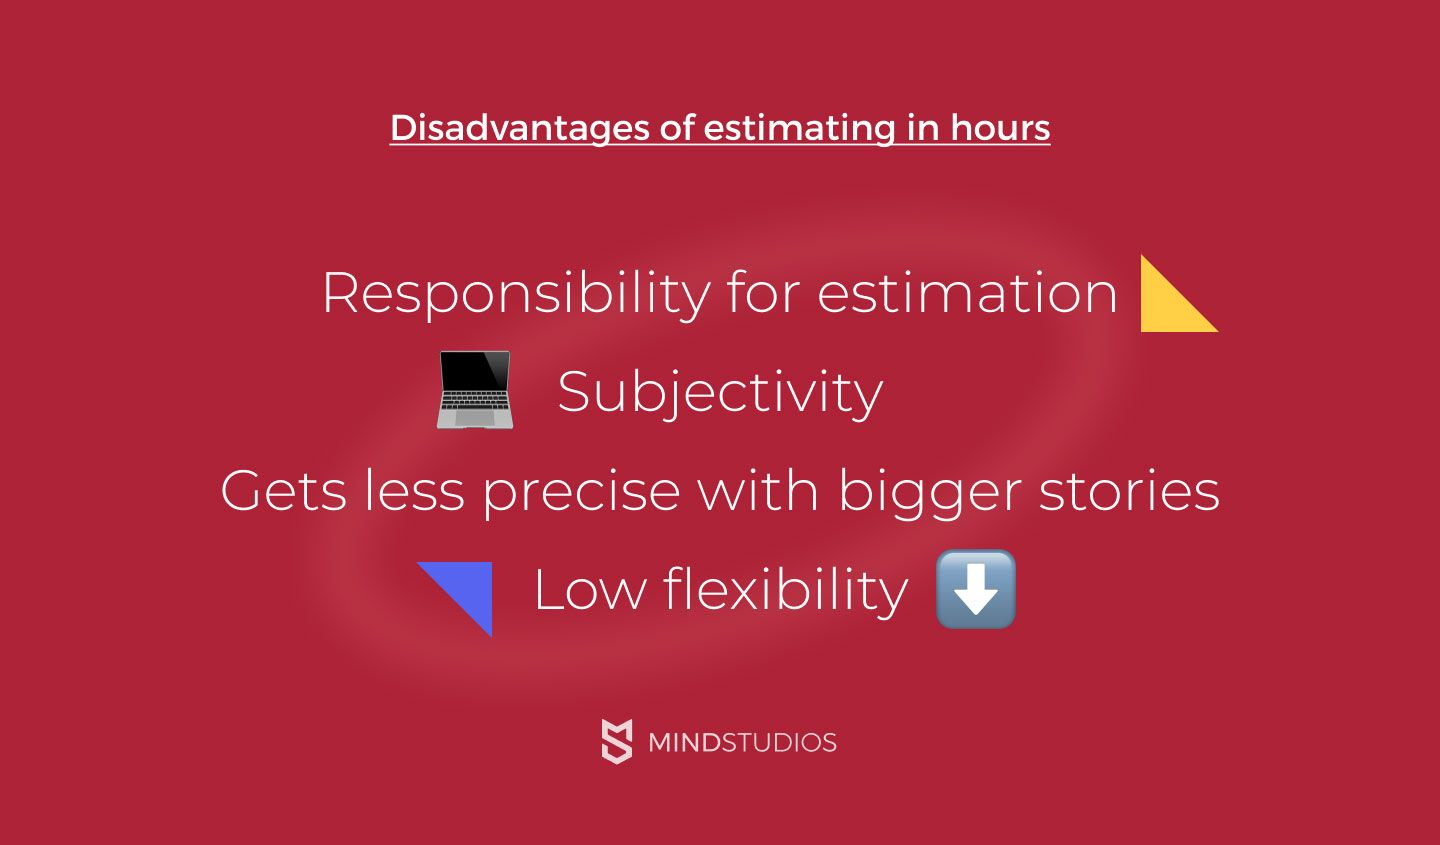 Disadvantages of estimating in hours